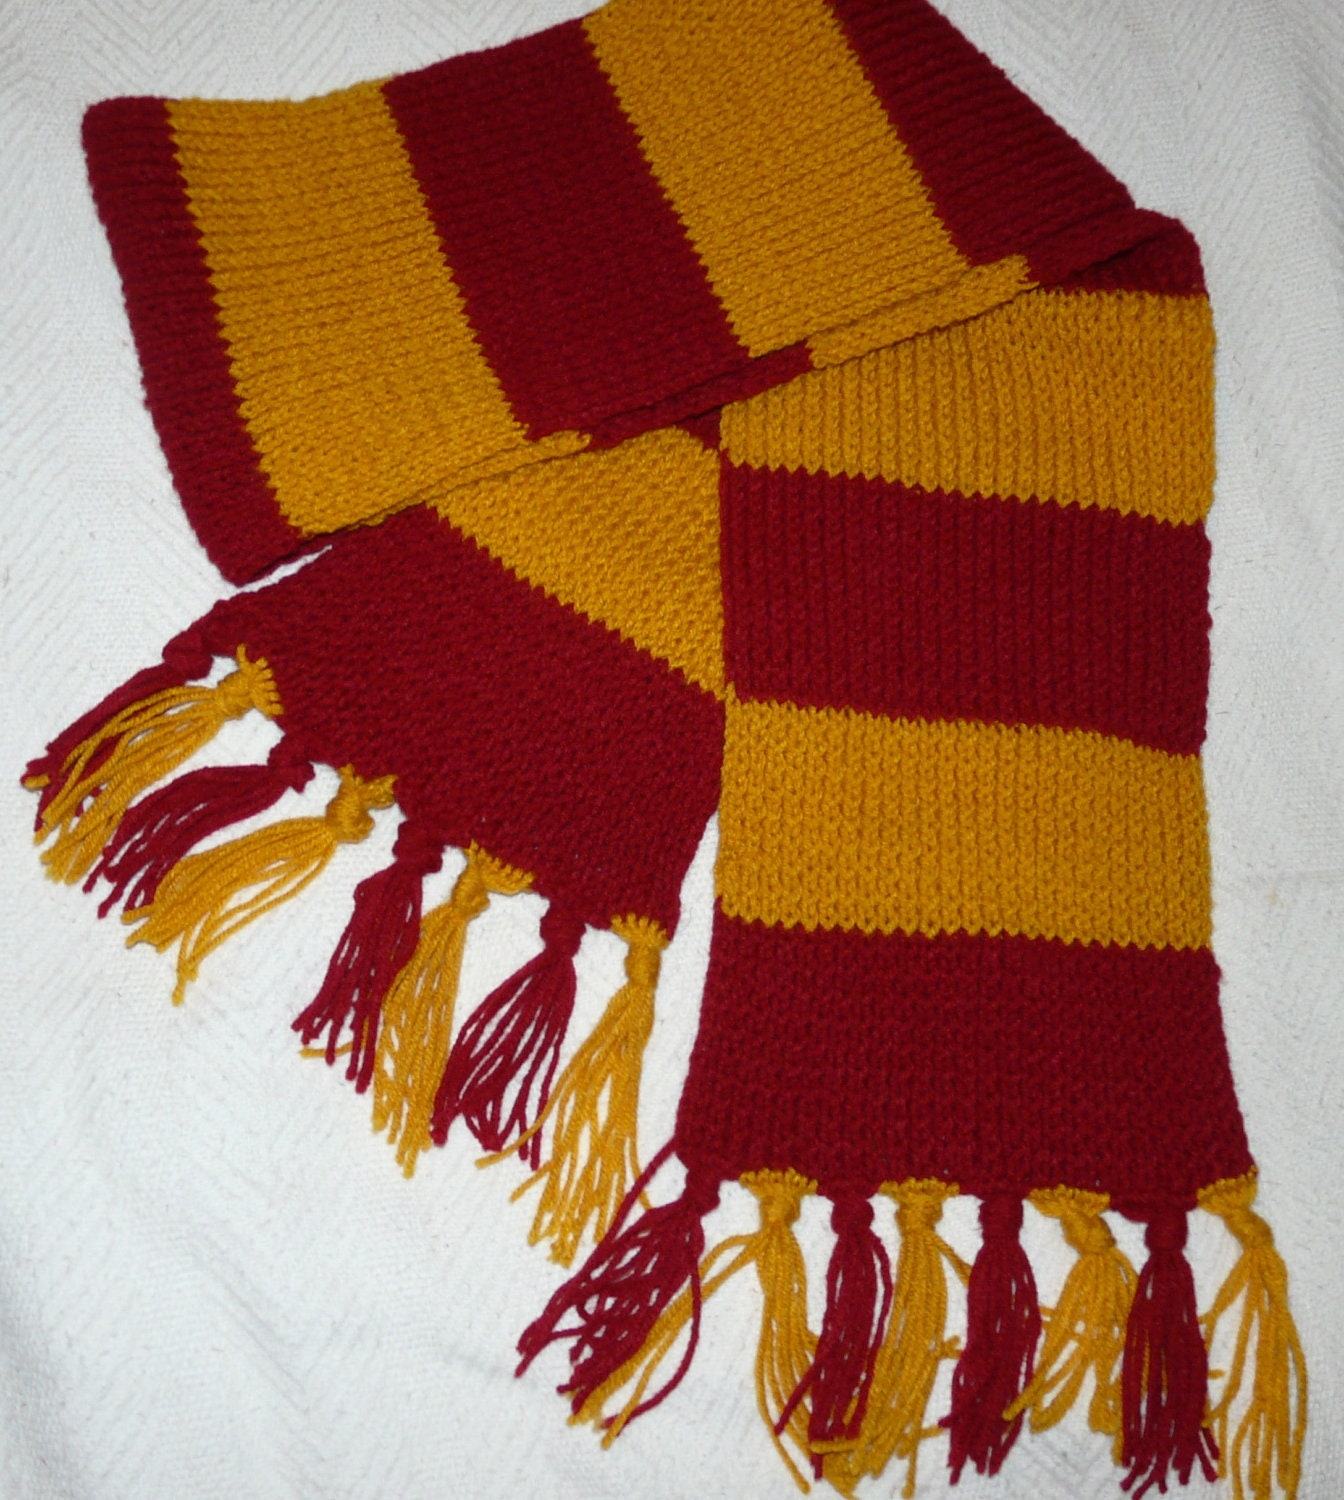 Knitting Pattern For Gryffindor Scarf : Harry Potter Gryffindor knit scarf with tassels by AinsDesign